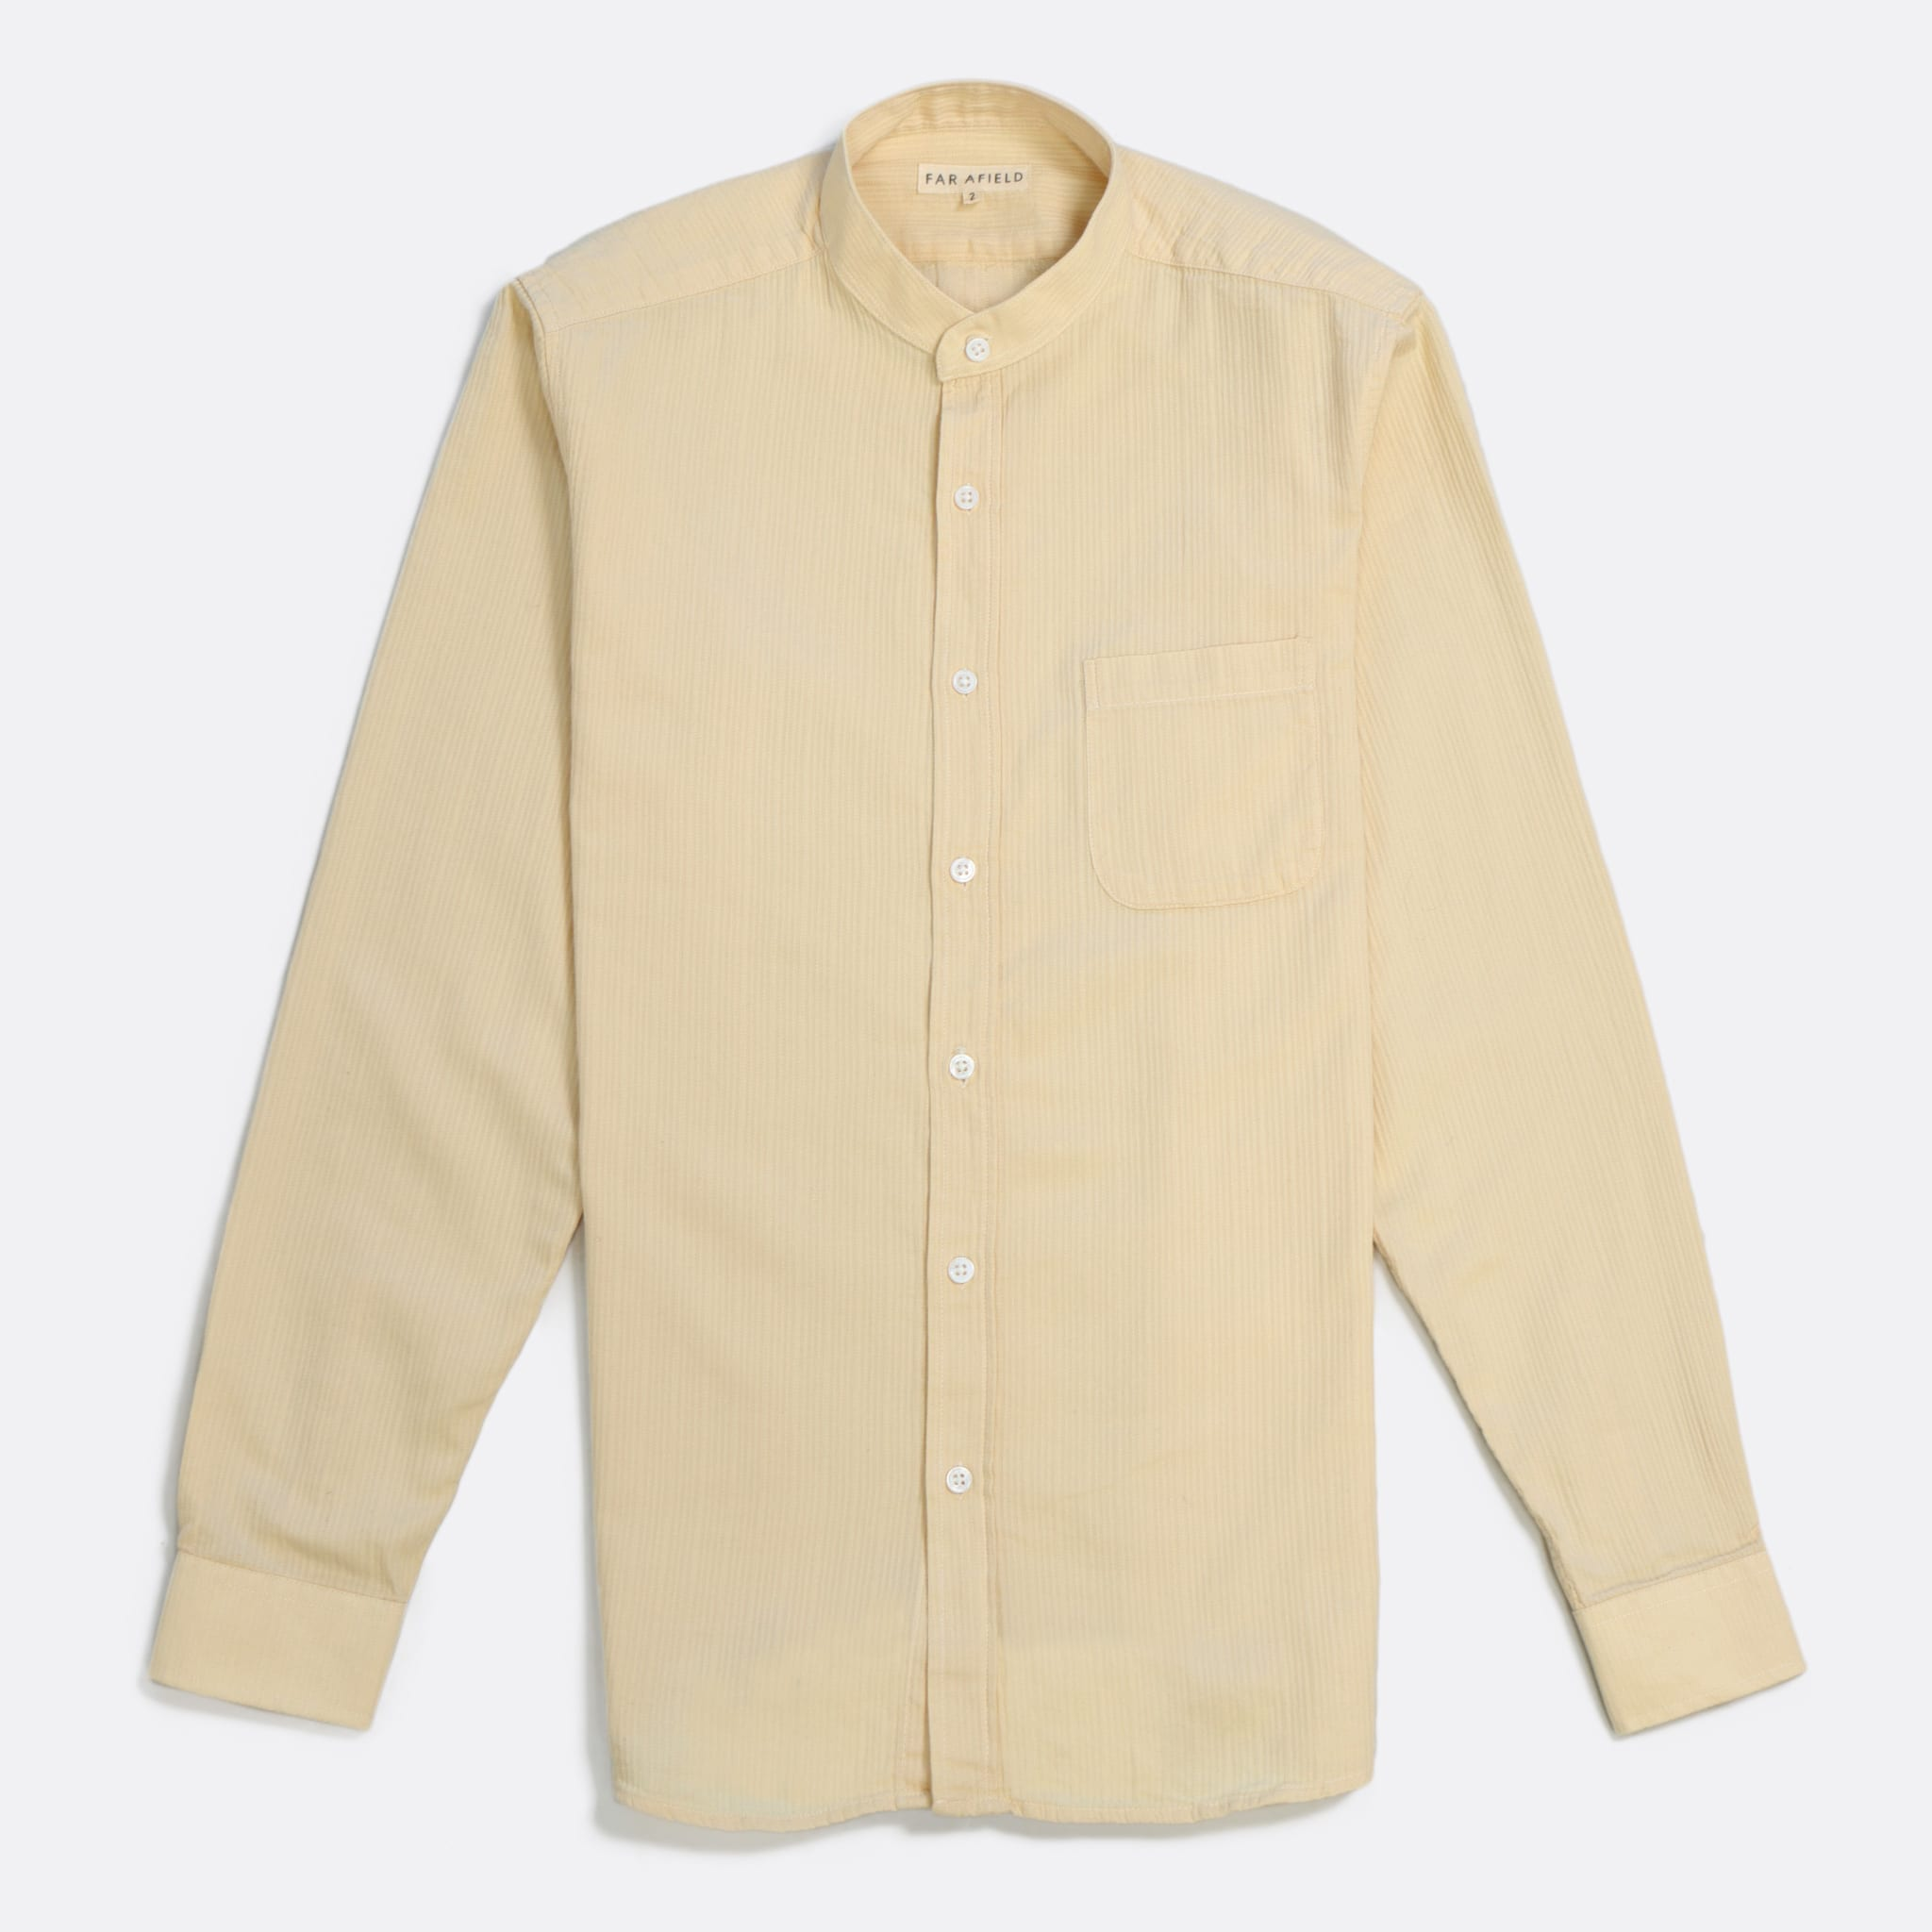 Far Afield Twombly Long Sleeve Shirt a Lambs White Textured Stripe BCI Cotton Twombly Shirt